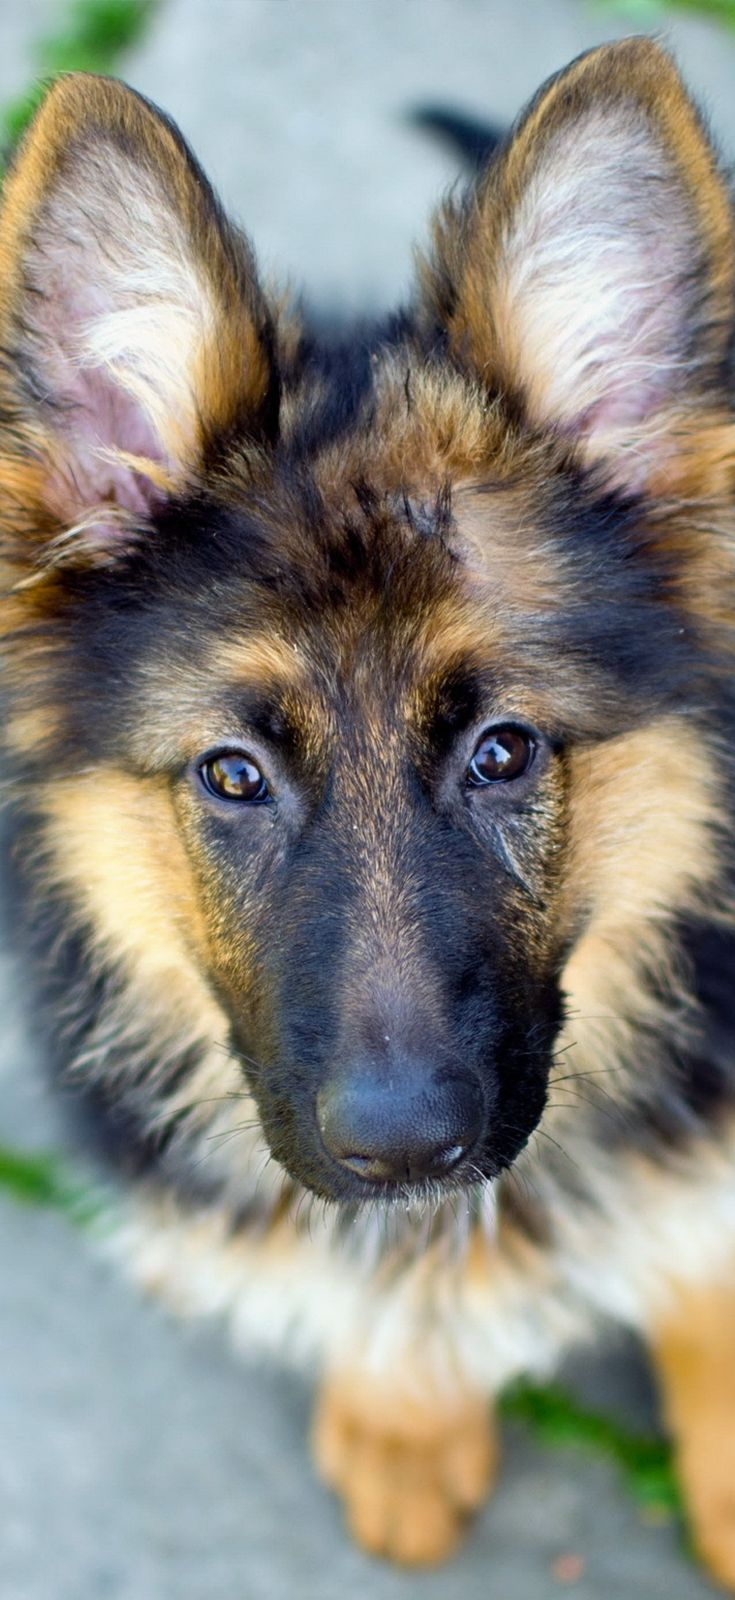 532 best german shepherds images on pinterest german shepherd iphone 5 animalgerman shepherd wallpaper id 559004 nvjuhfo Choice Image